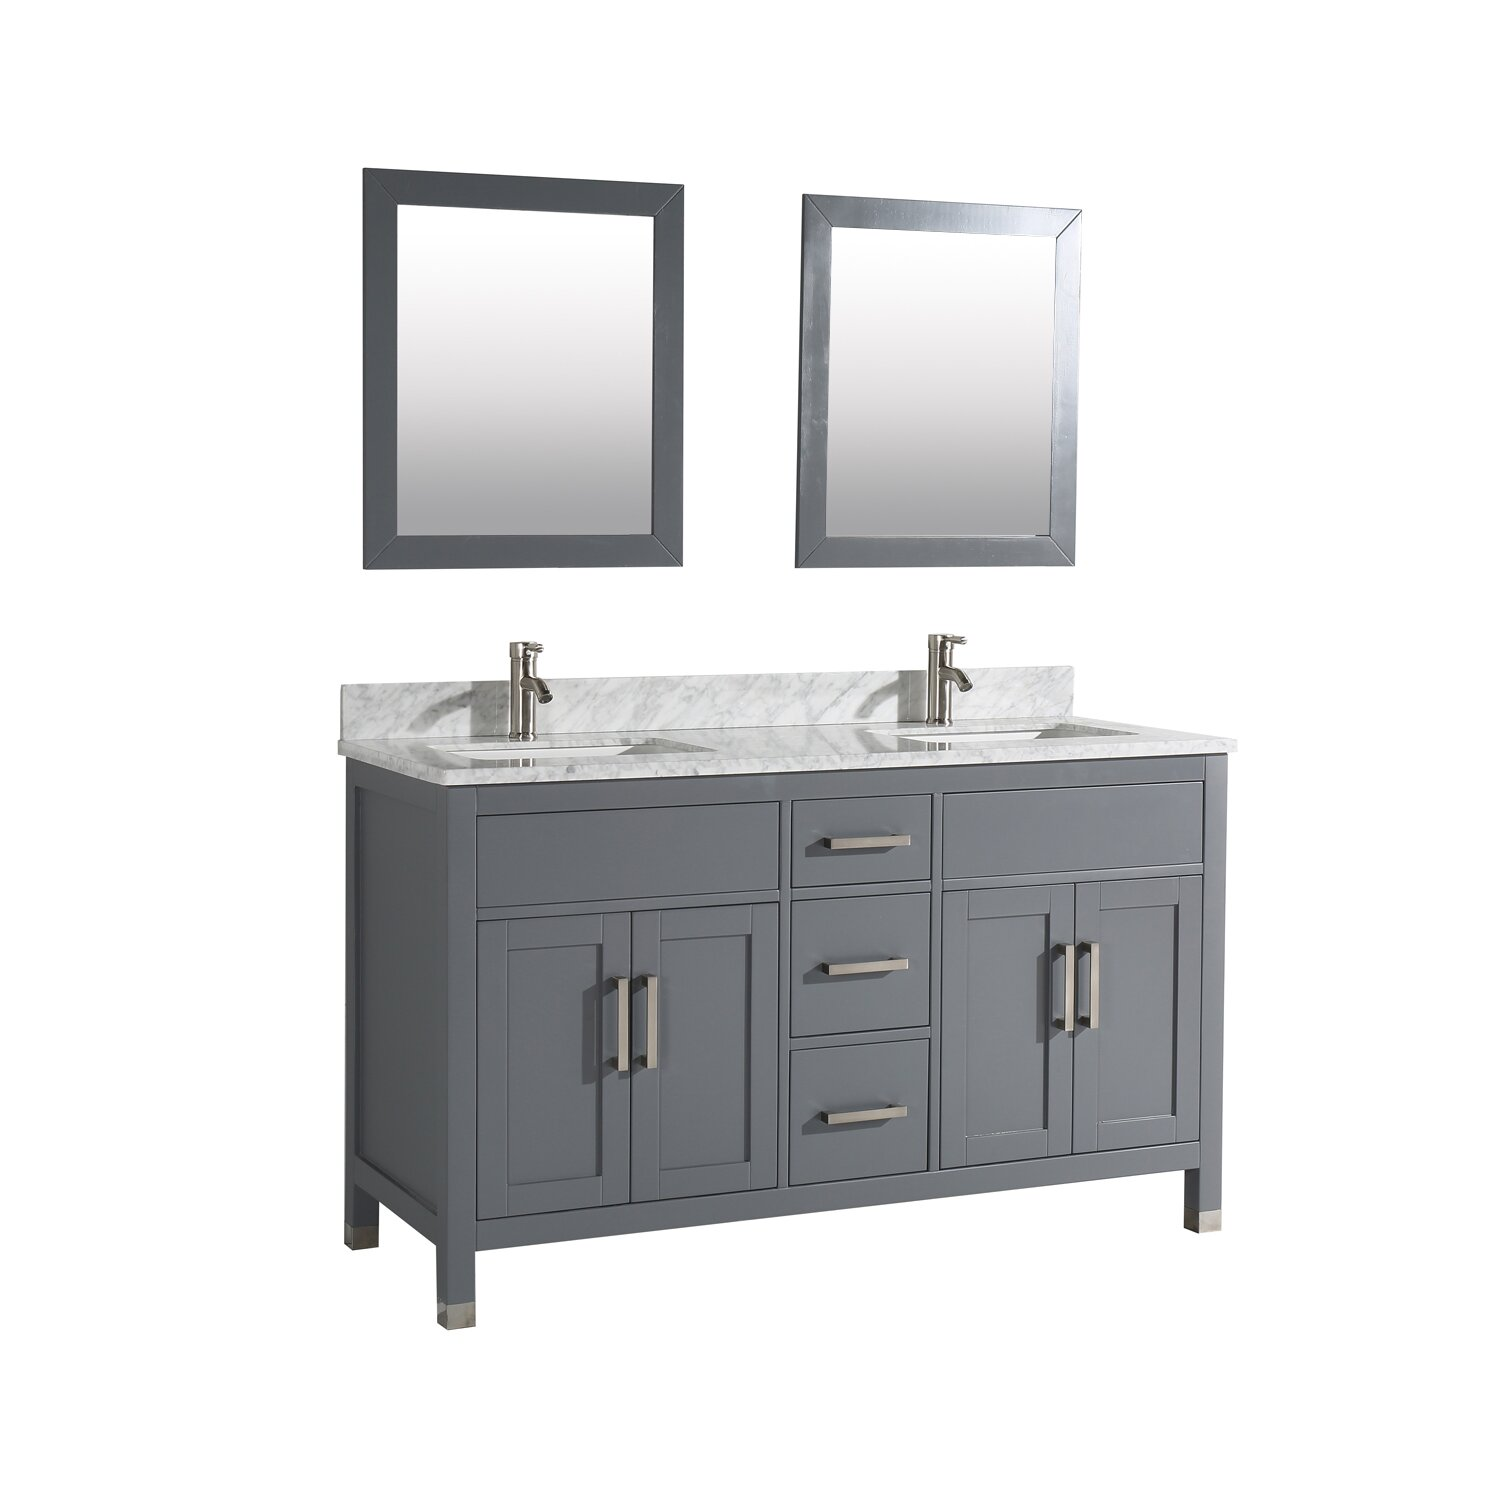 Mtdvanities ricca 60 double sink bathroom vanity set with mirror reviews Bathroom sink and vanity sets